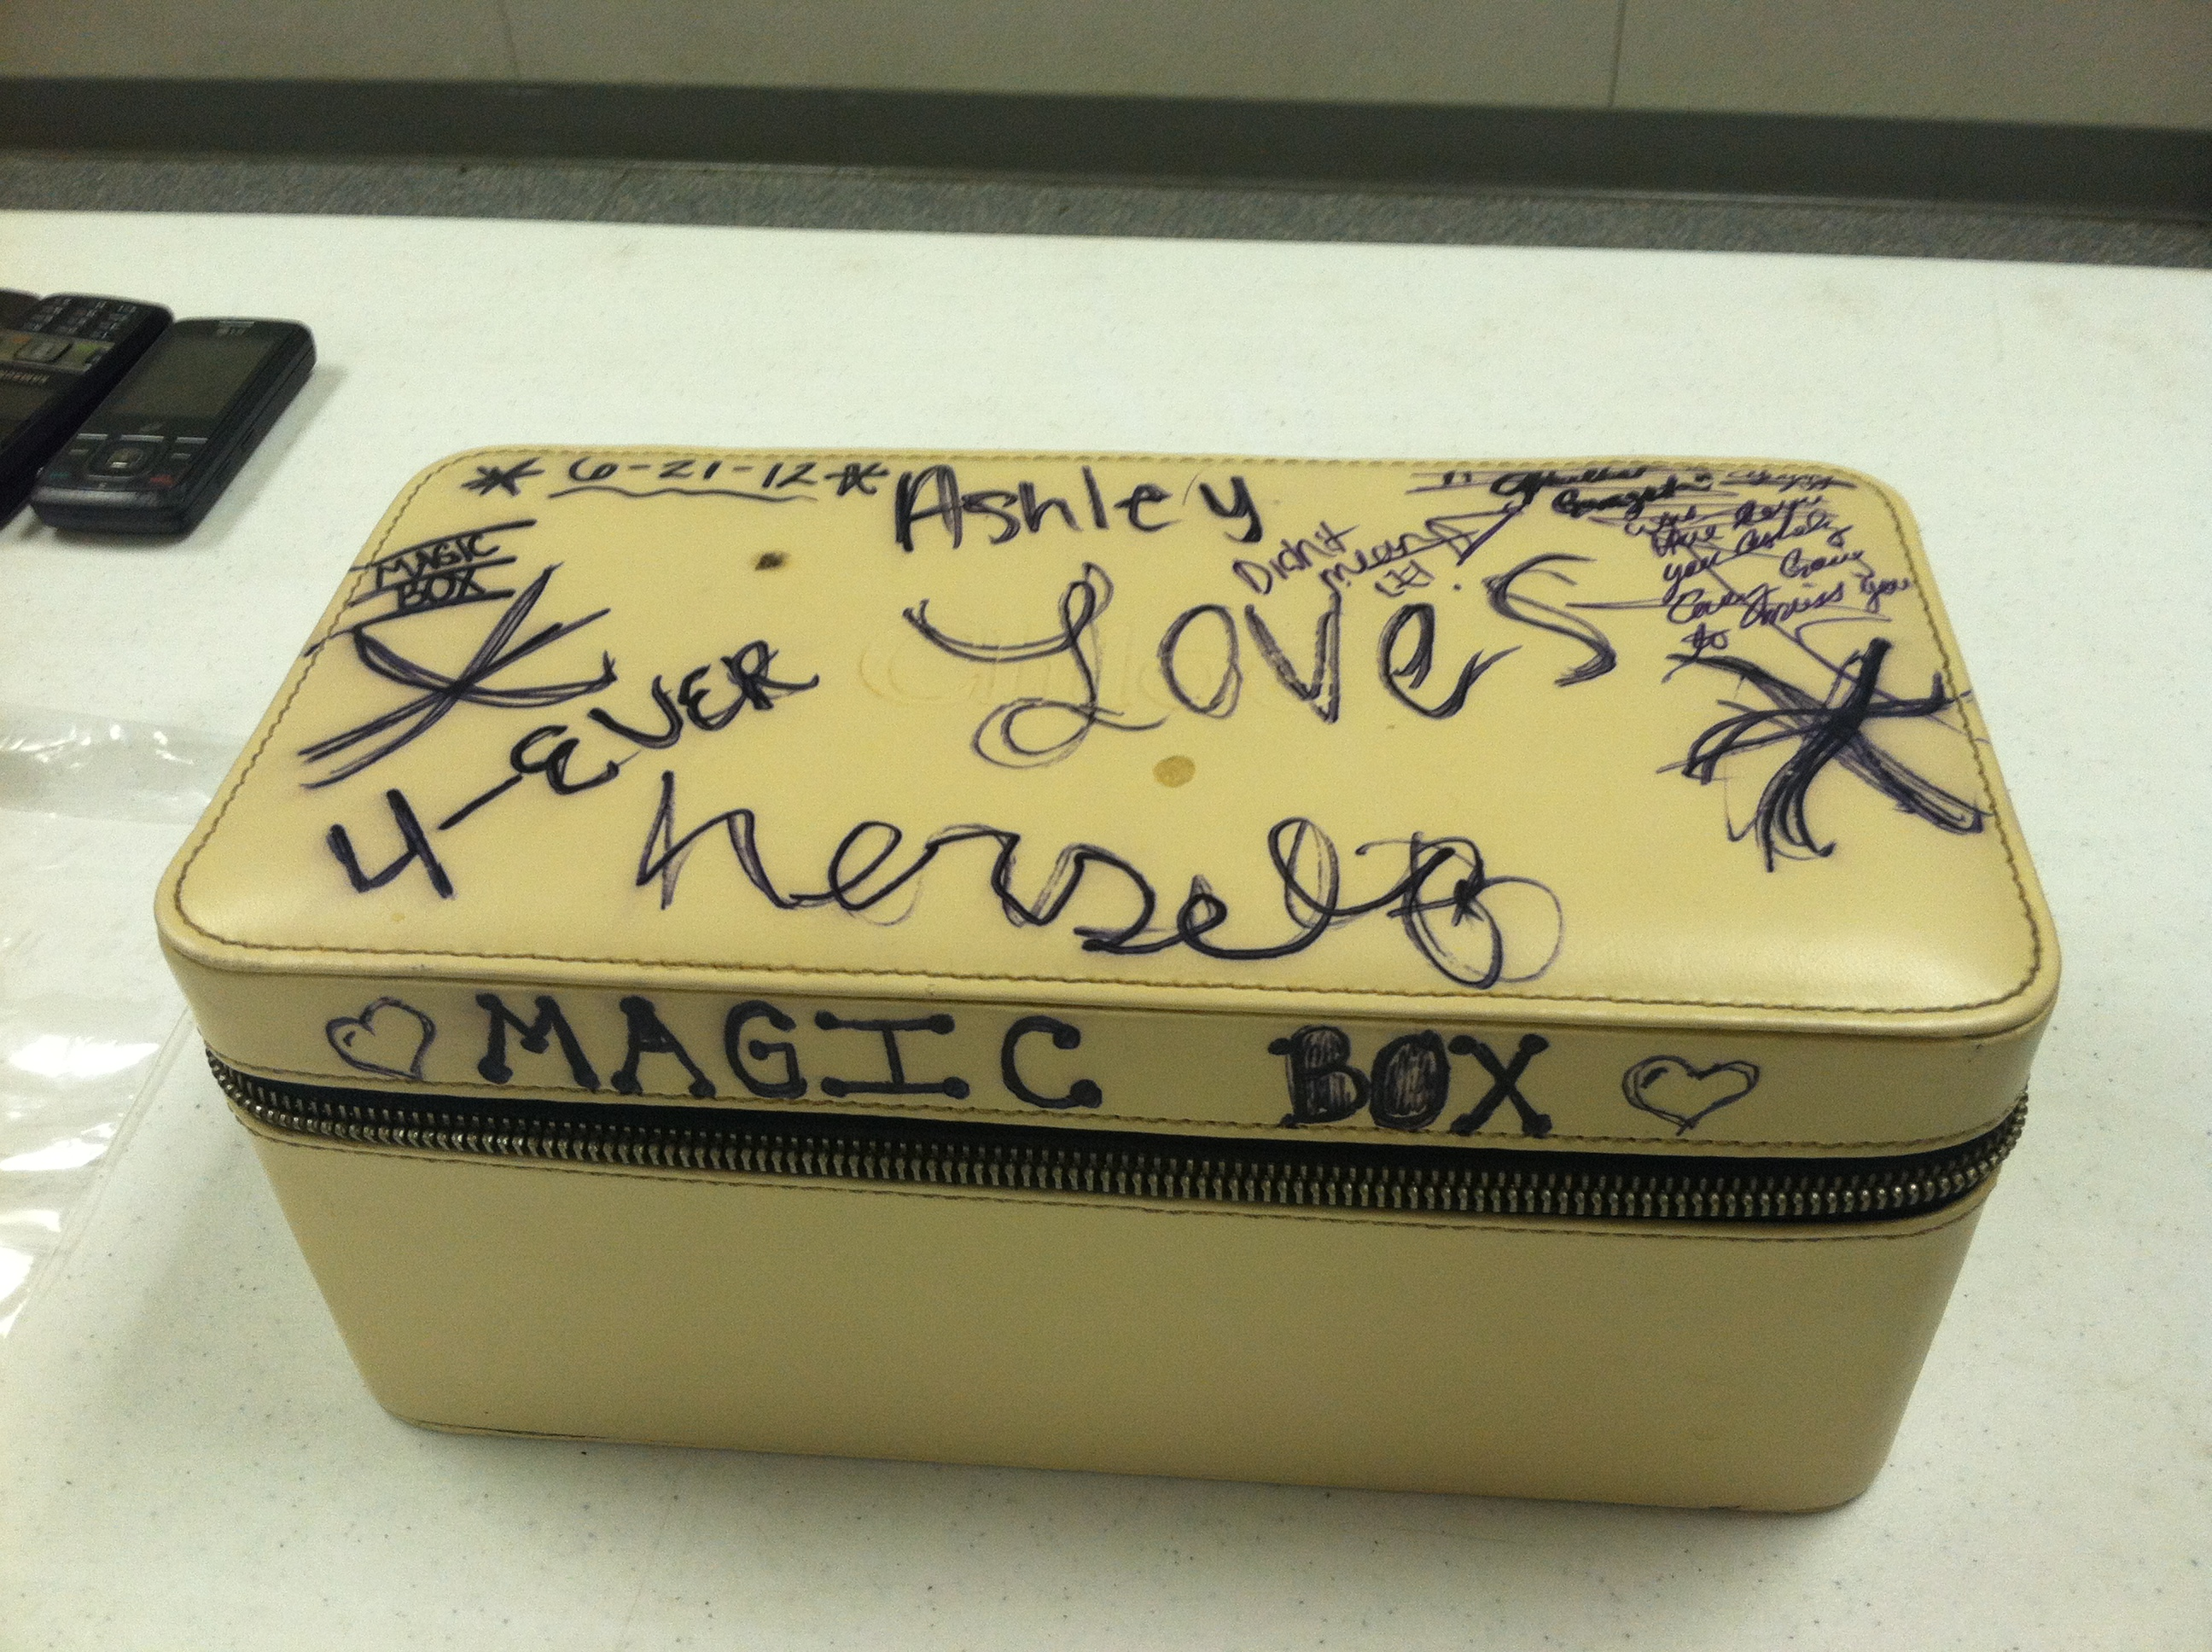 Deputies say the suspects hid drugs in this child's box